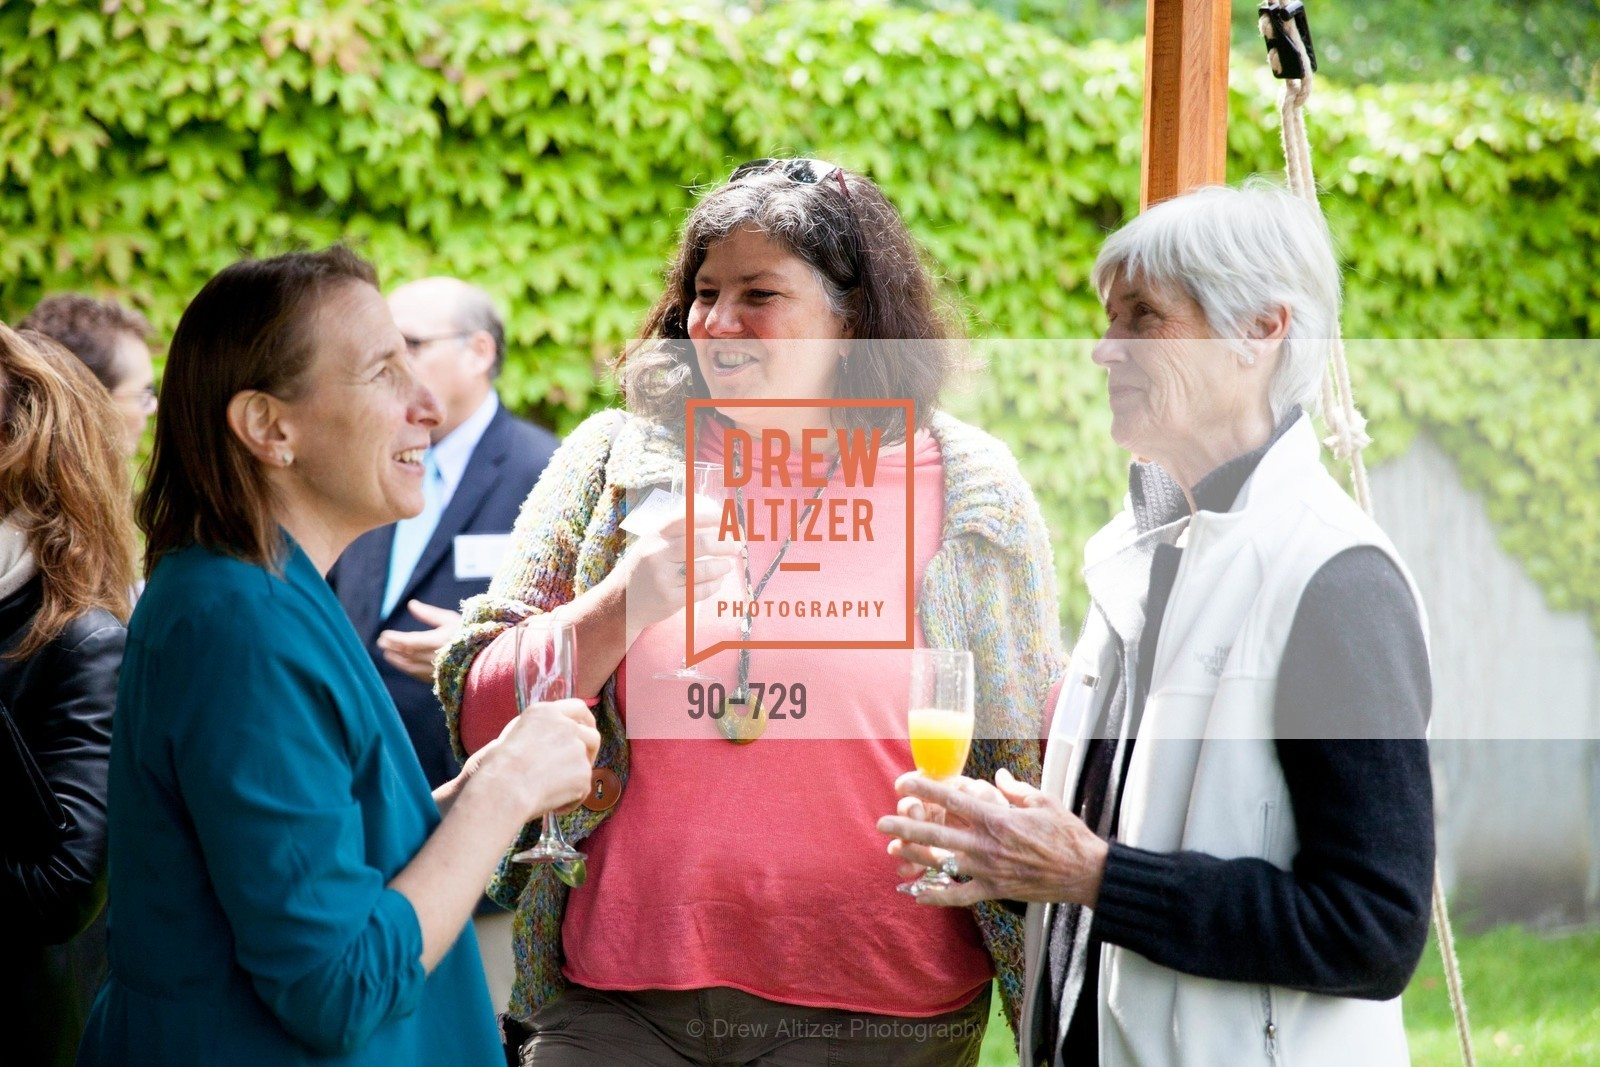 Sarah Kupferberg, Karina Nielsen, Susan Lukens, THE TRUST FOR PUBLIC LAND Luncheon Hosted by THE DREVER FAMILY FOUNDATION, US, May 15th, 2015,Drew Altizer, Drew Altizer Photography, full-service agency, private events, San Francisco photographer, photographer california